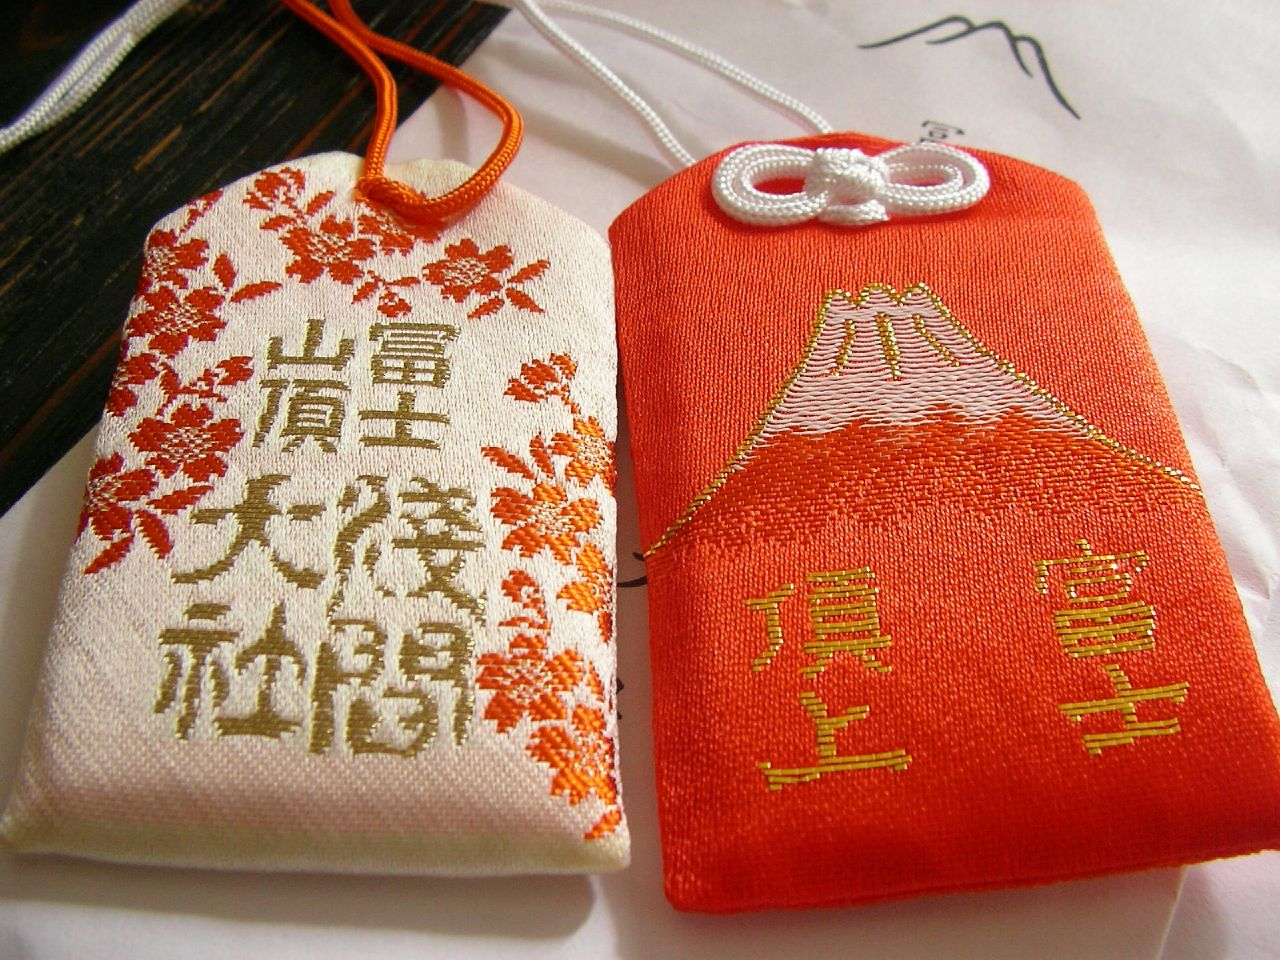 omamori is what to buy in japan